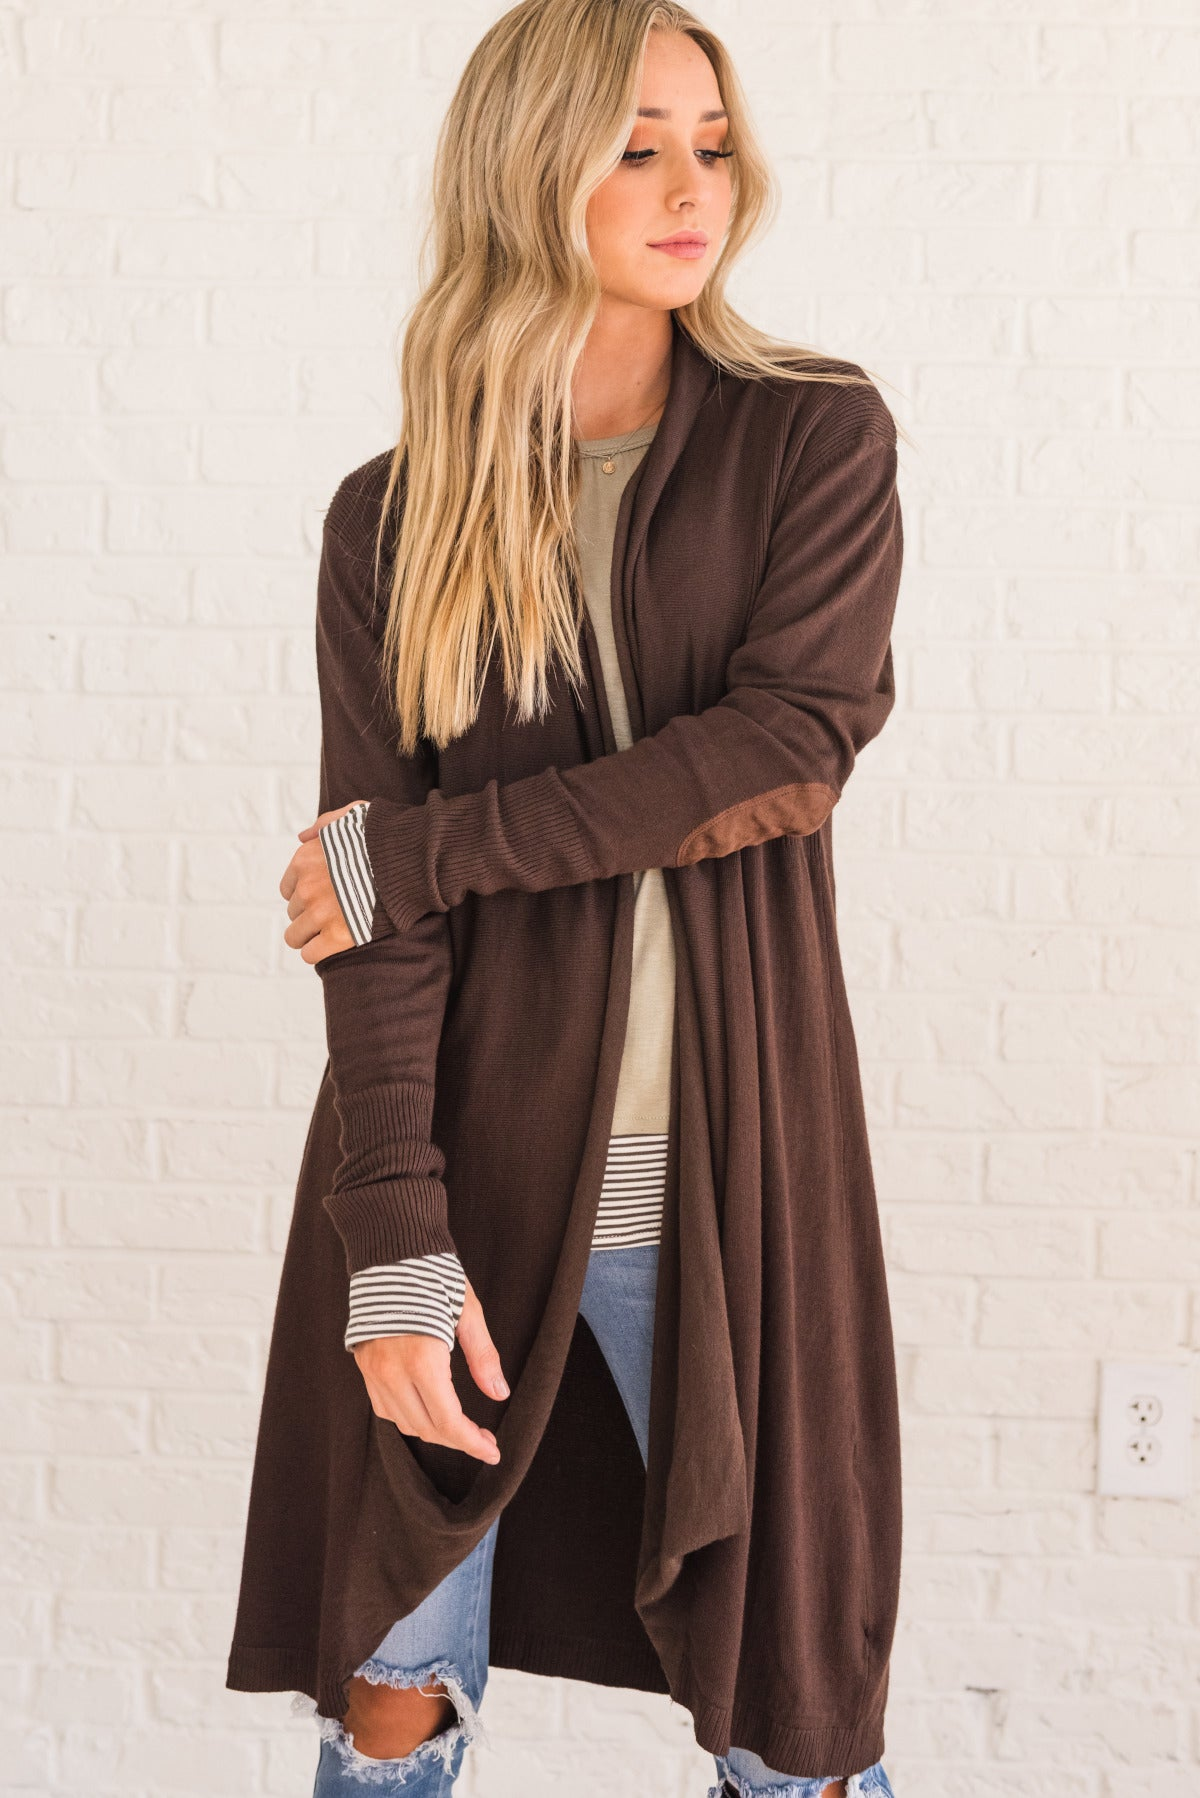 Brown High-Quality Boutique Cardigans for Women